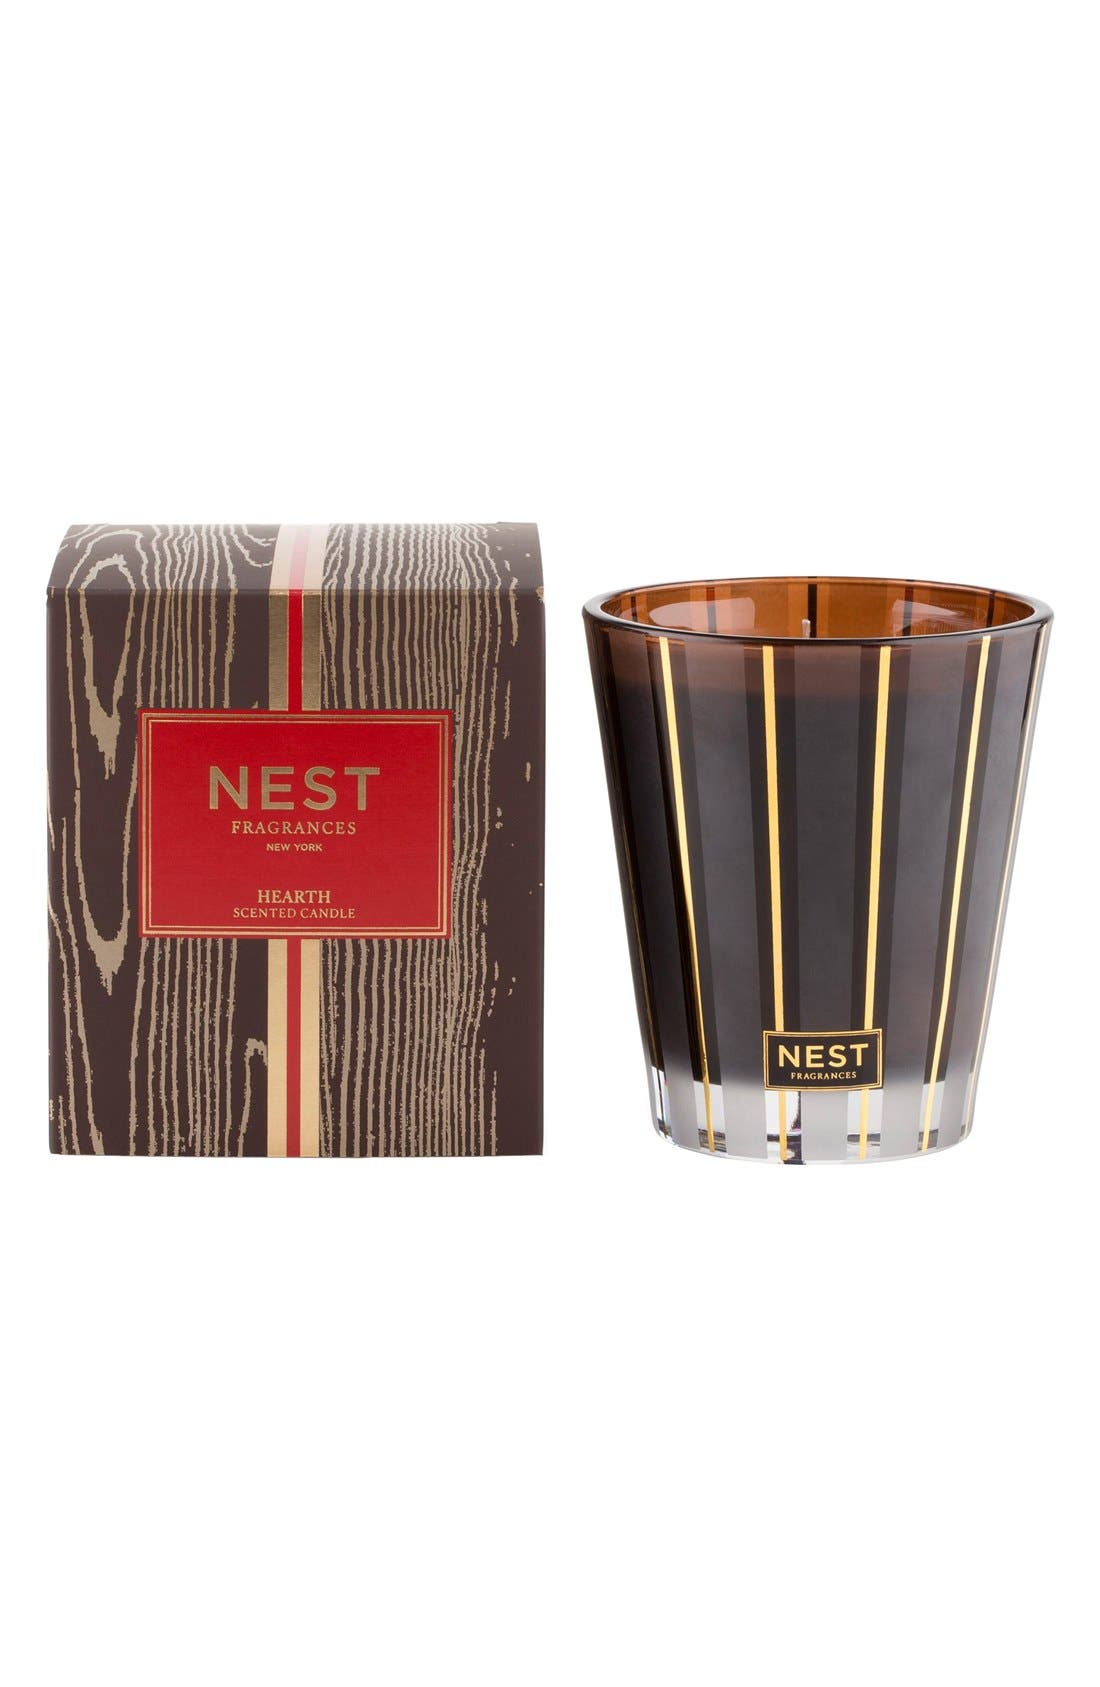 Alternate Image 1 Selected - NEST Fragrances Hearth Scented Classic Candle